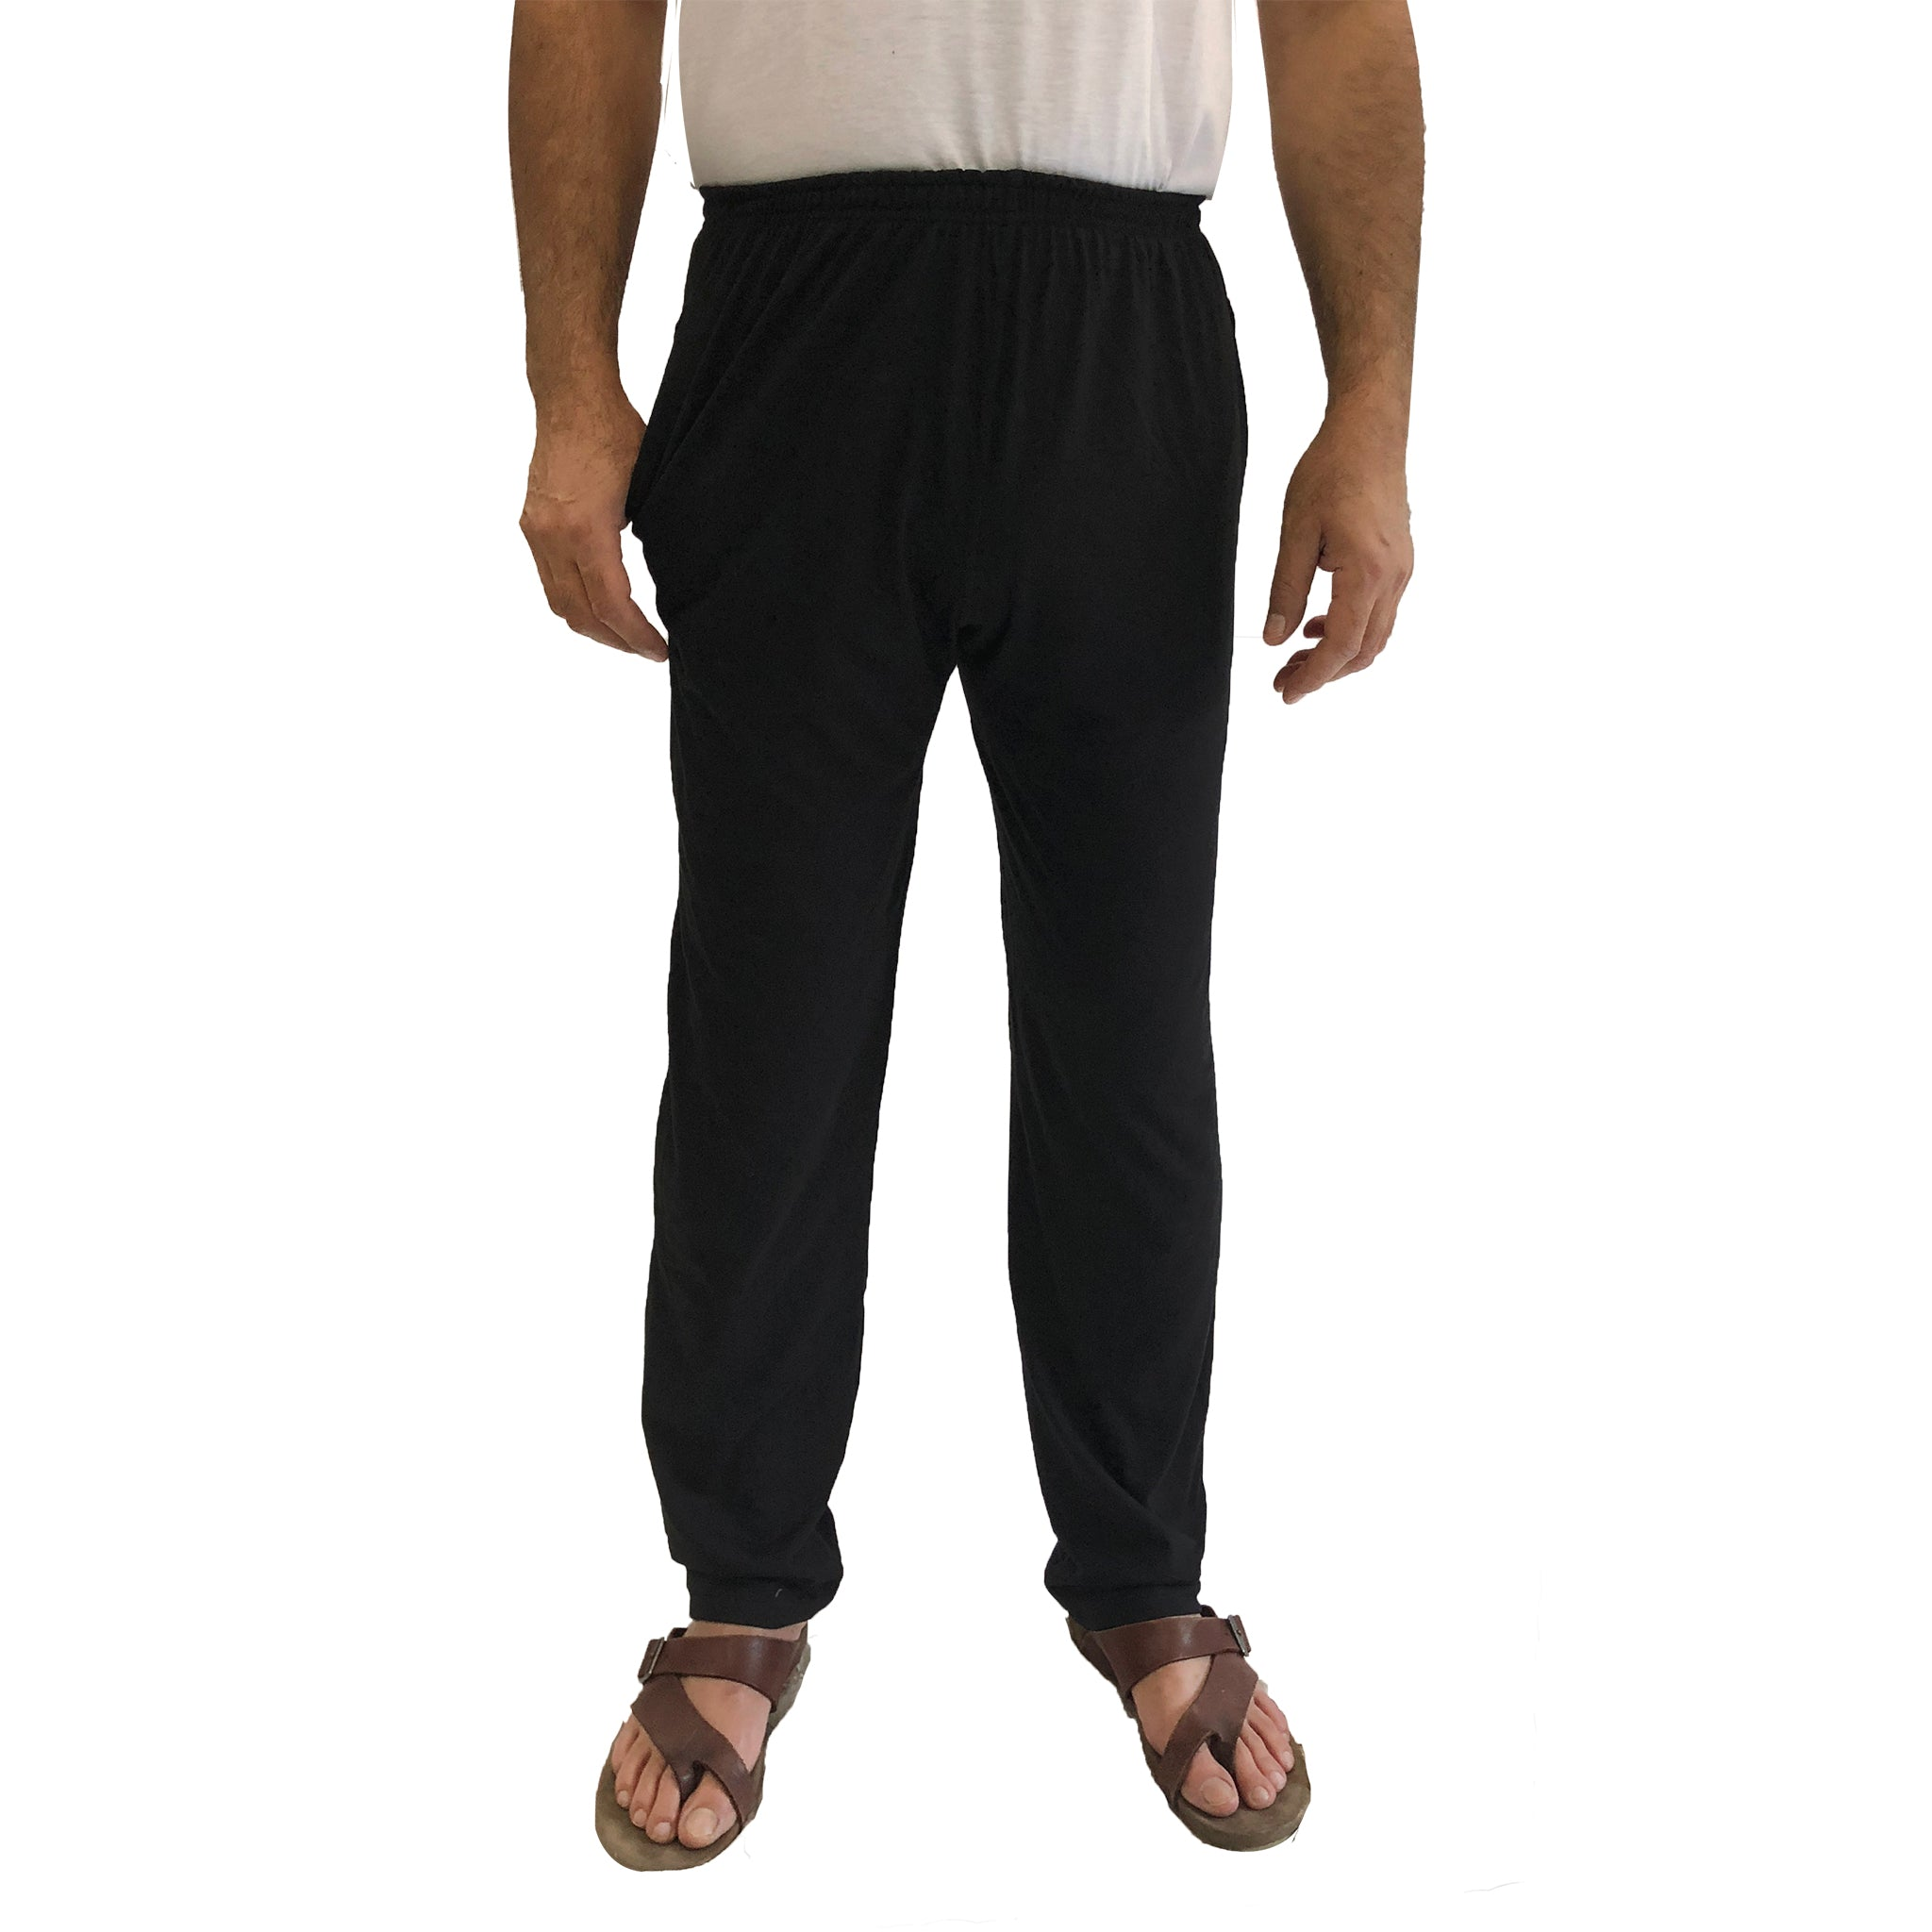 Charcoal Black Pajamas